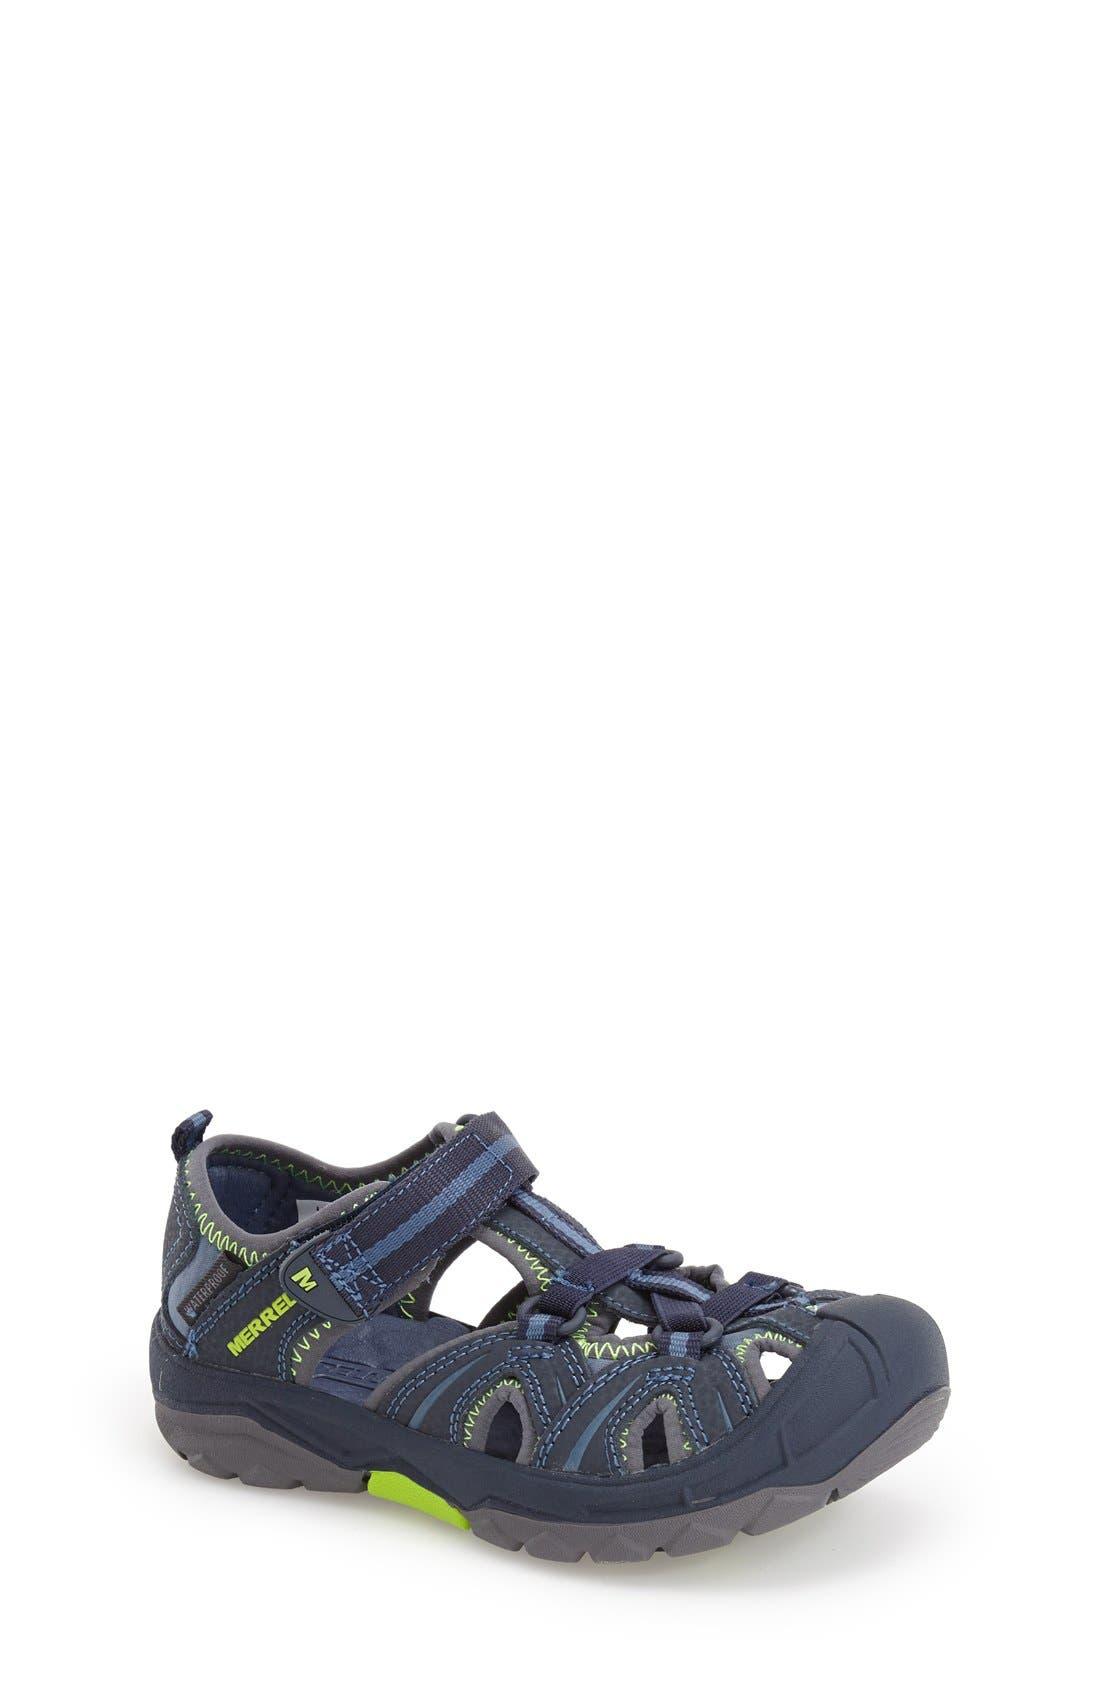 Hydro Water Sandal,                         Main,                         color, NAVY/ GREEN